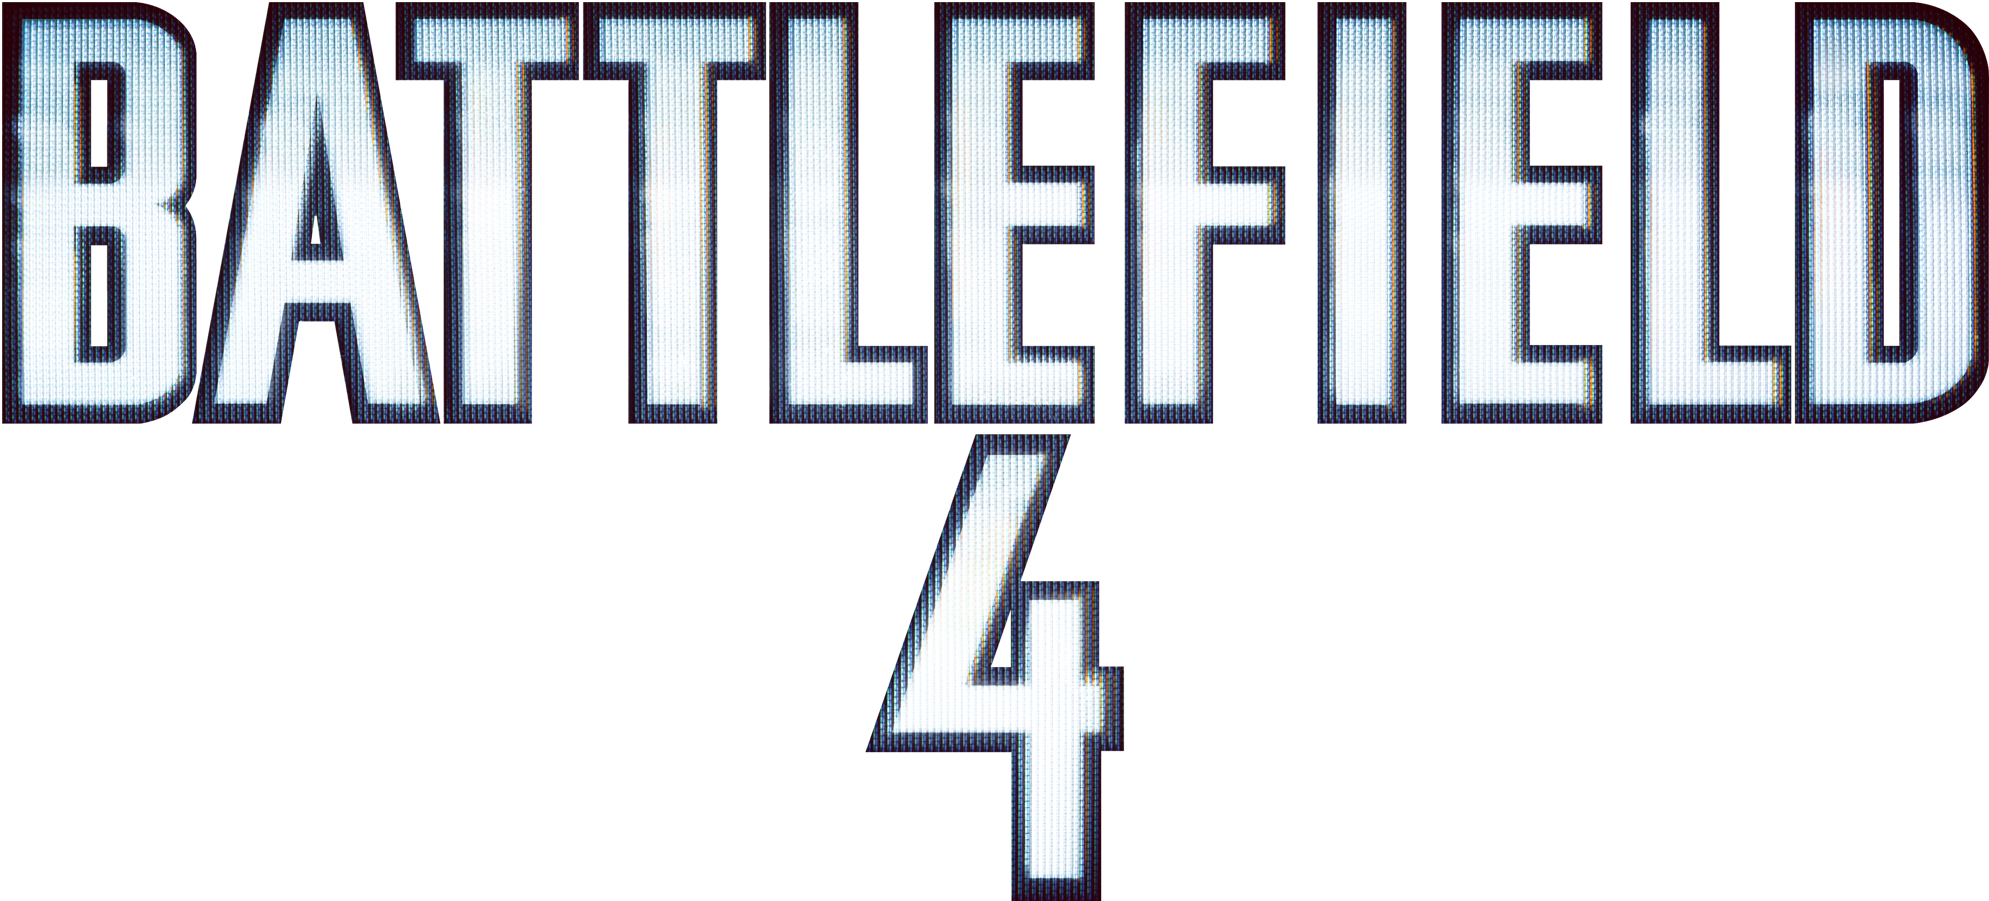 Battlefield 5 logo png. Image logopedia fandom powered